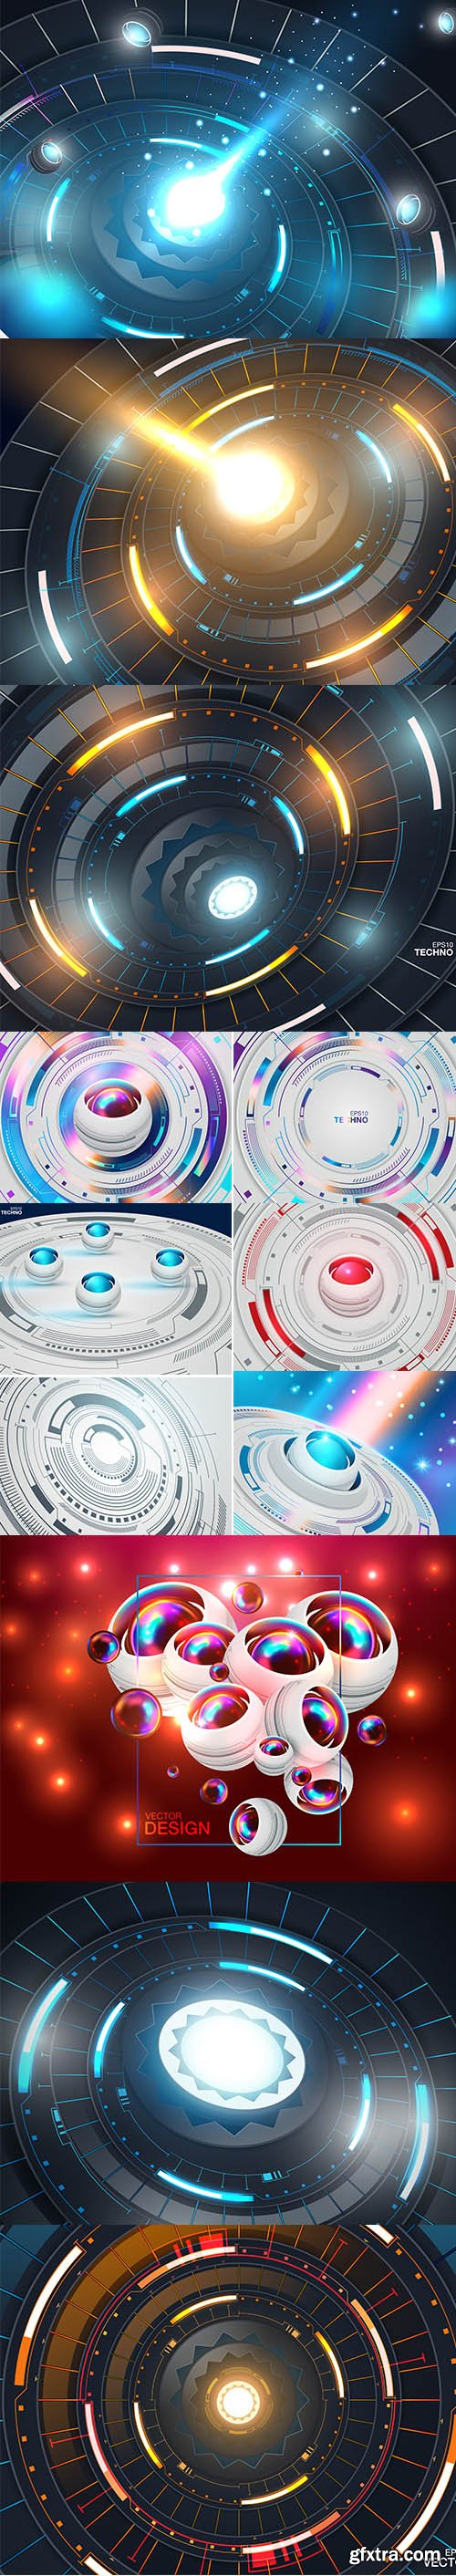 Futuristic Abstract High Computer Technology Illustrations